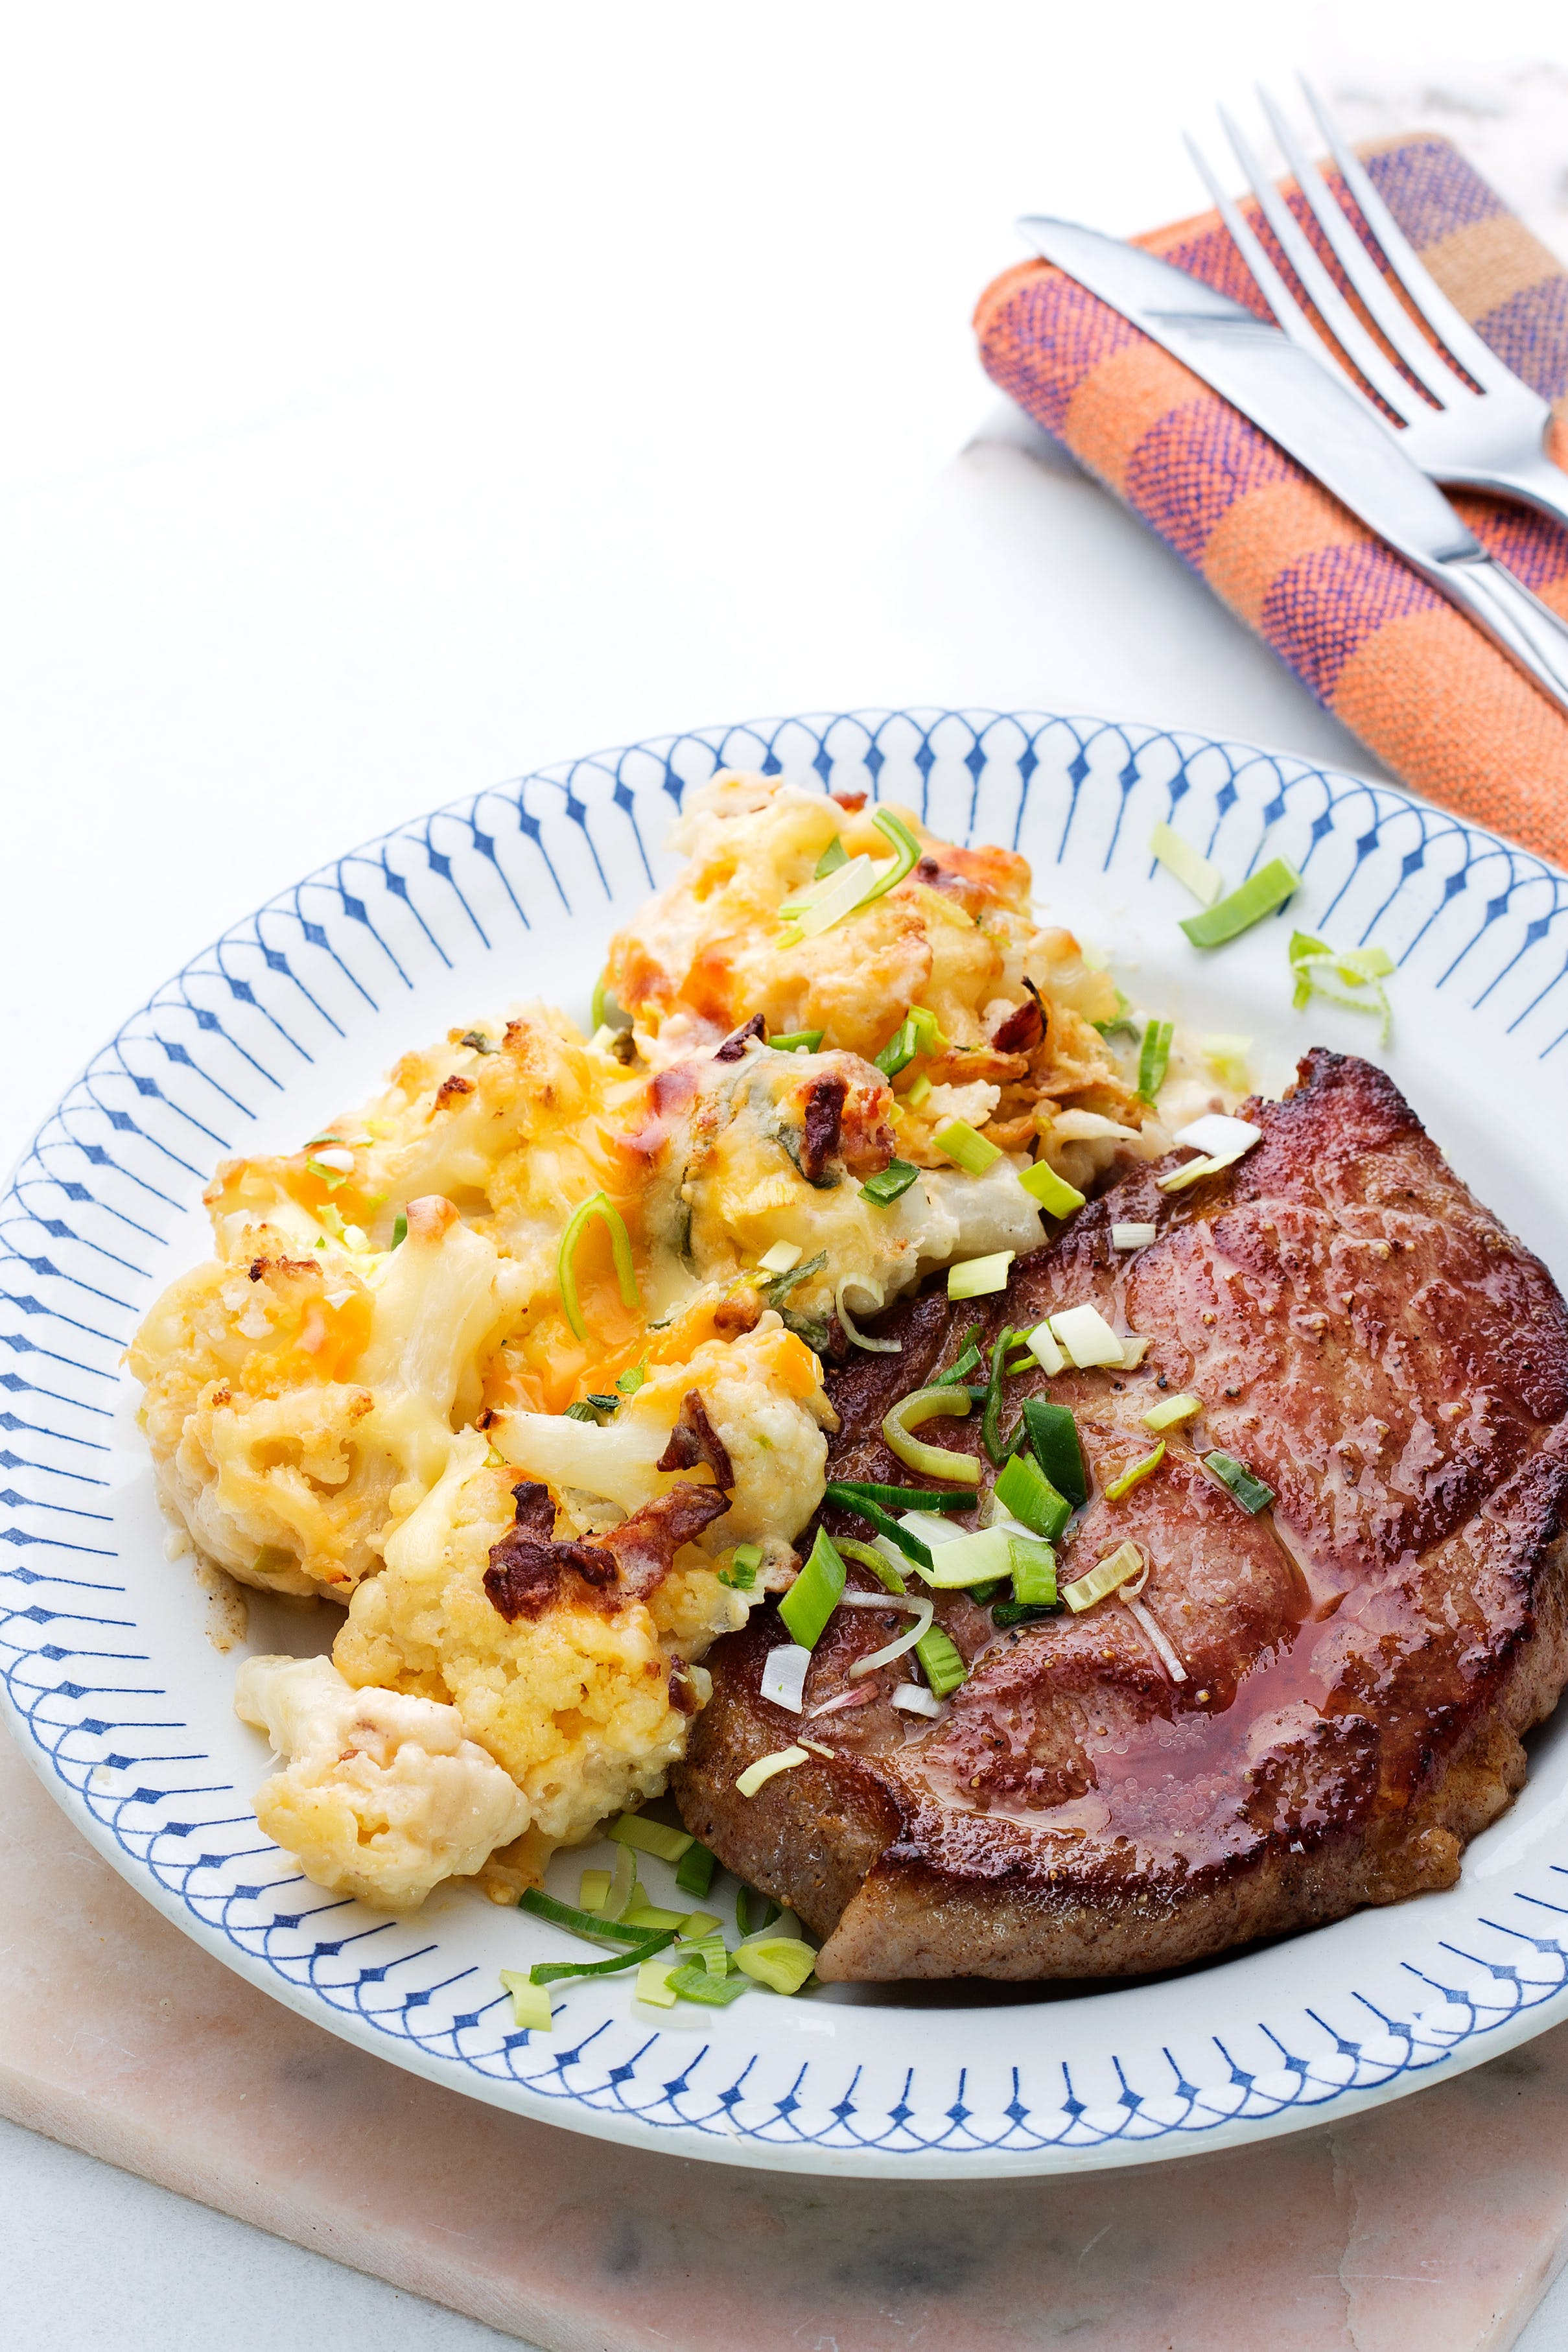 Pork shoulder chops with cauliflower au gratin